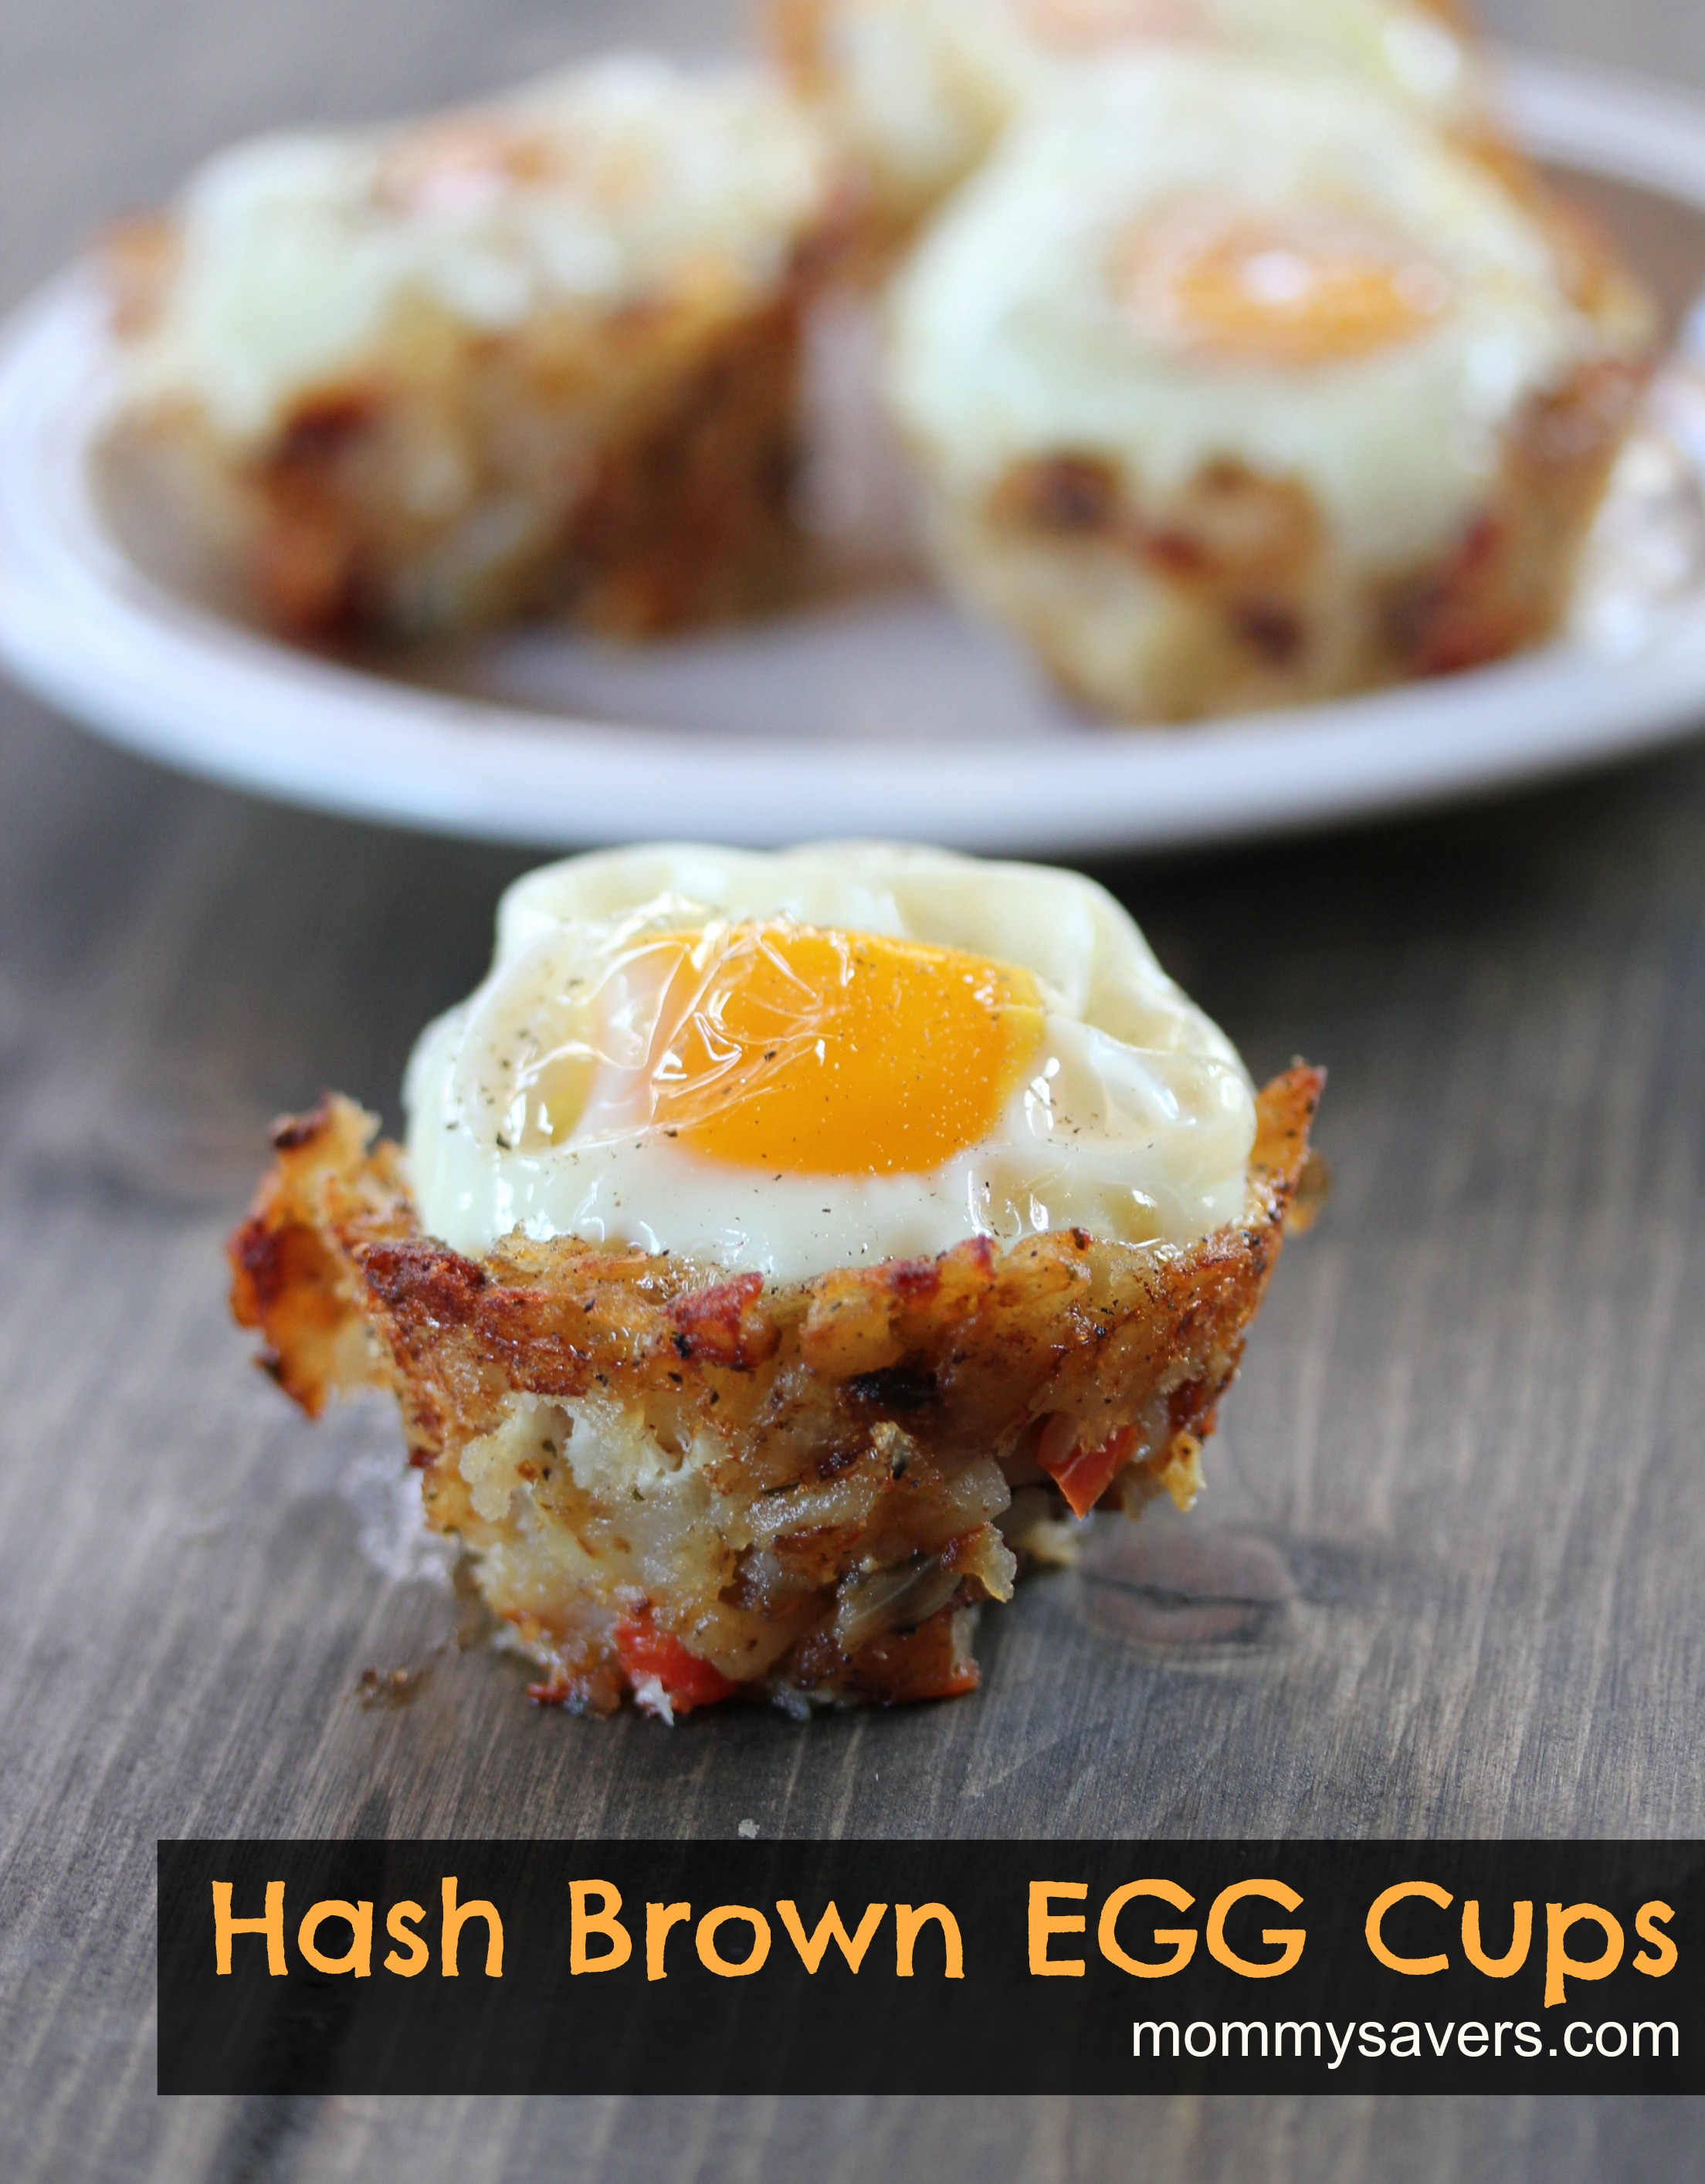 Hash Brown Egg Cups Recipe